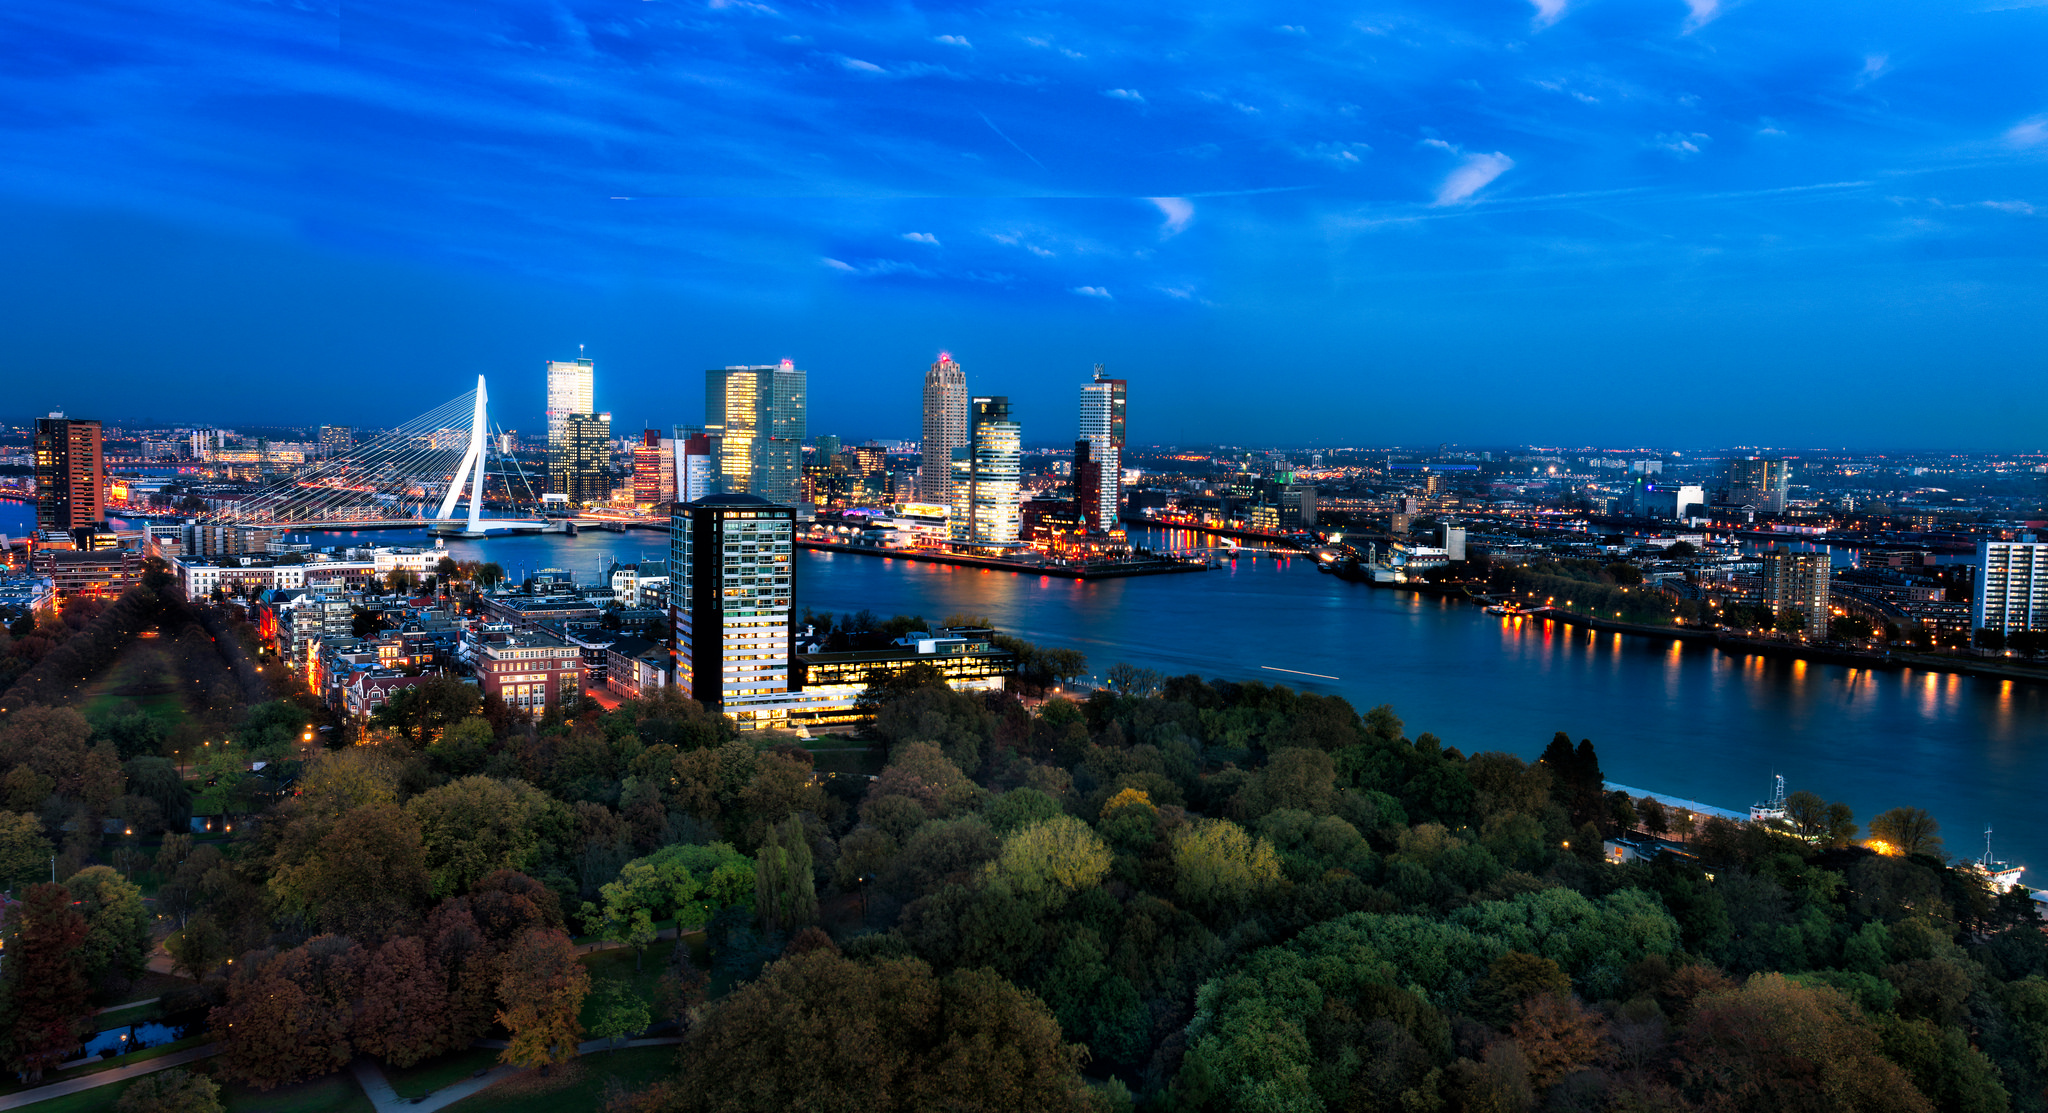 Rotterdam's skyline from above